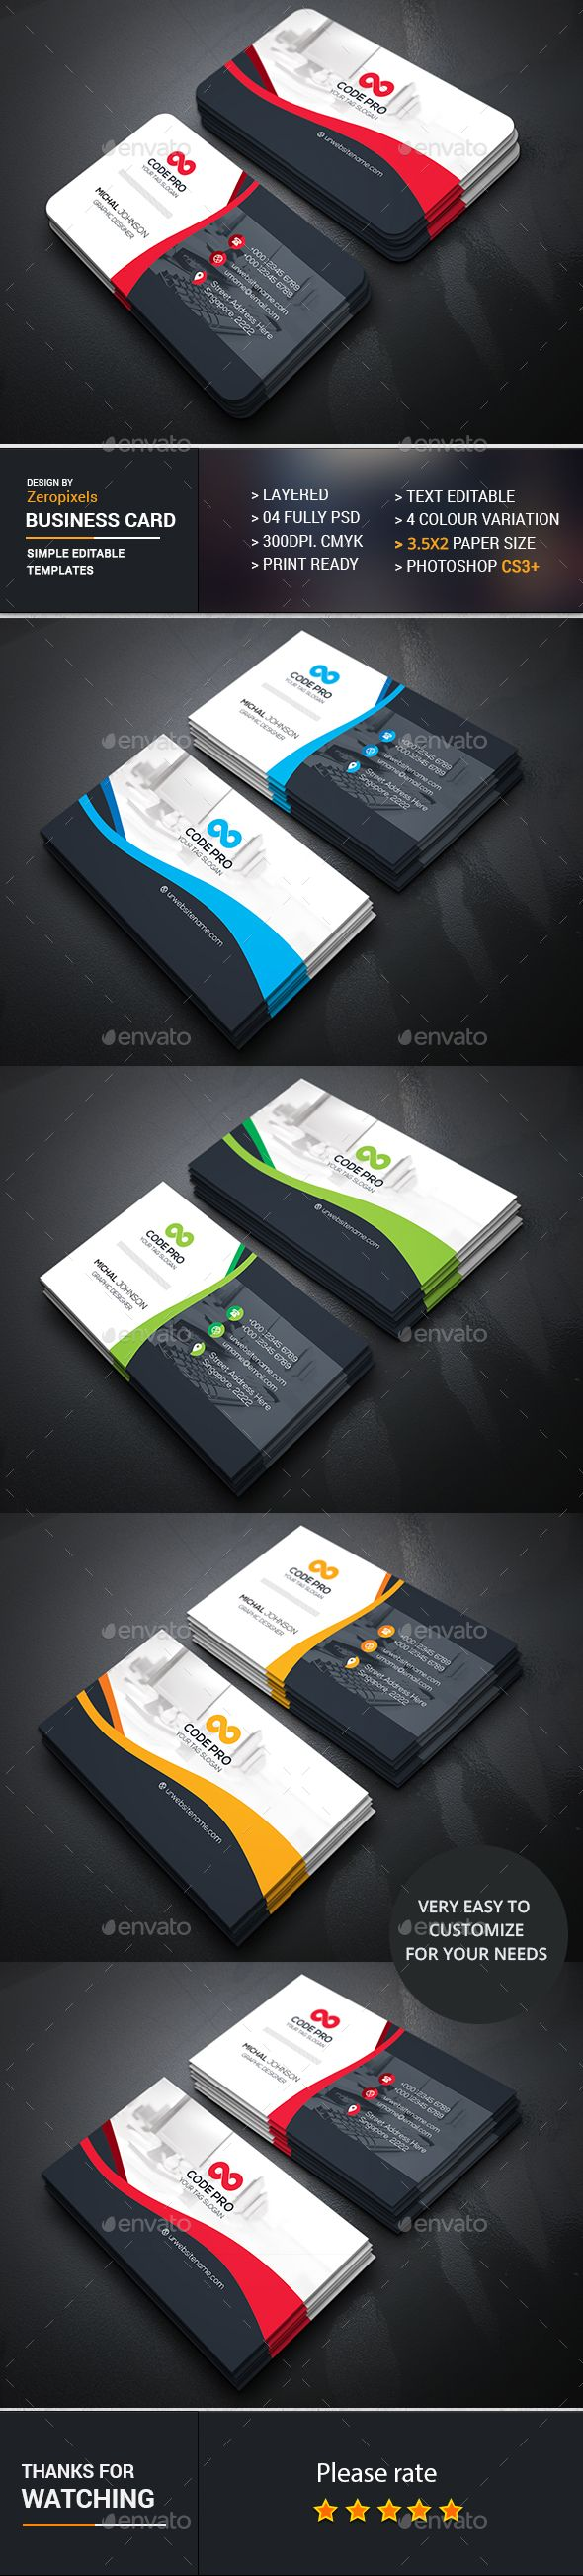 Corporate business card photoshop psd package designer corporate business card photoshop psd package designer available here httpsgraphicriveritemcorporate business card16913454refpxcr reheart Choice Image